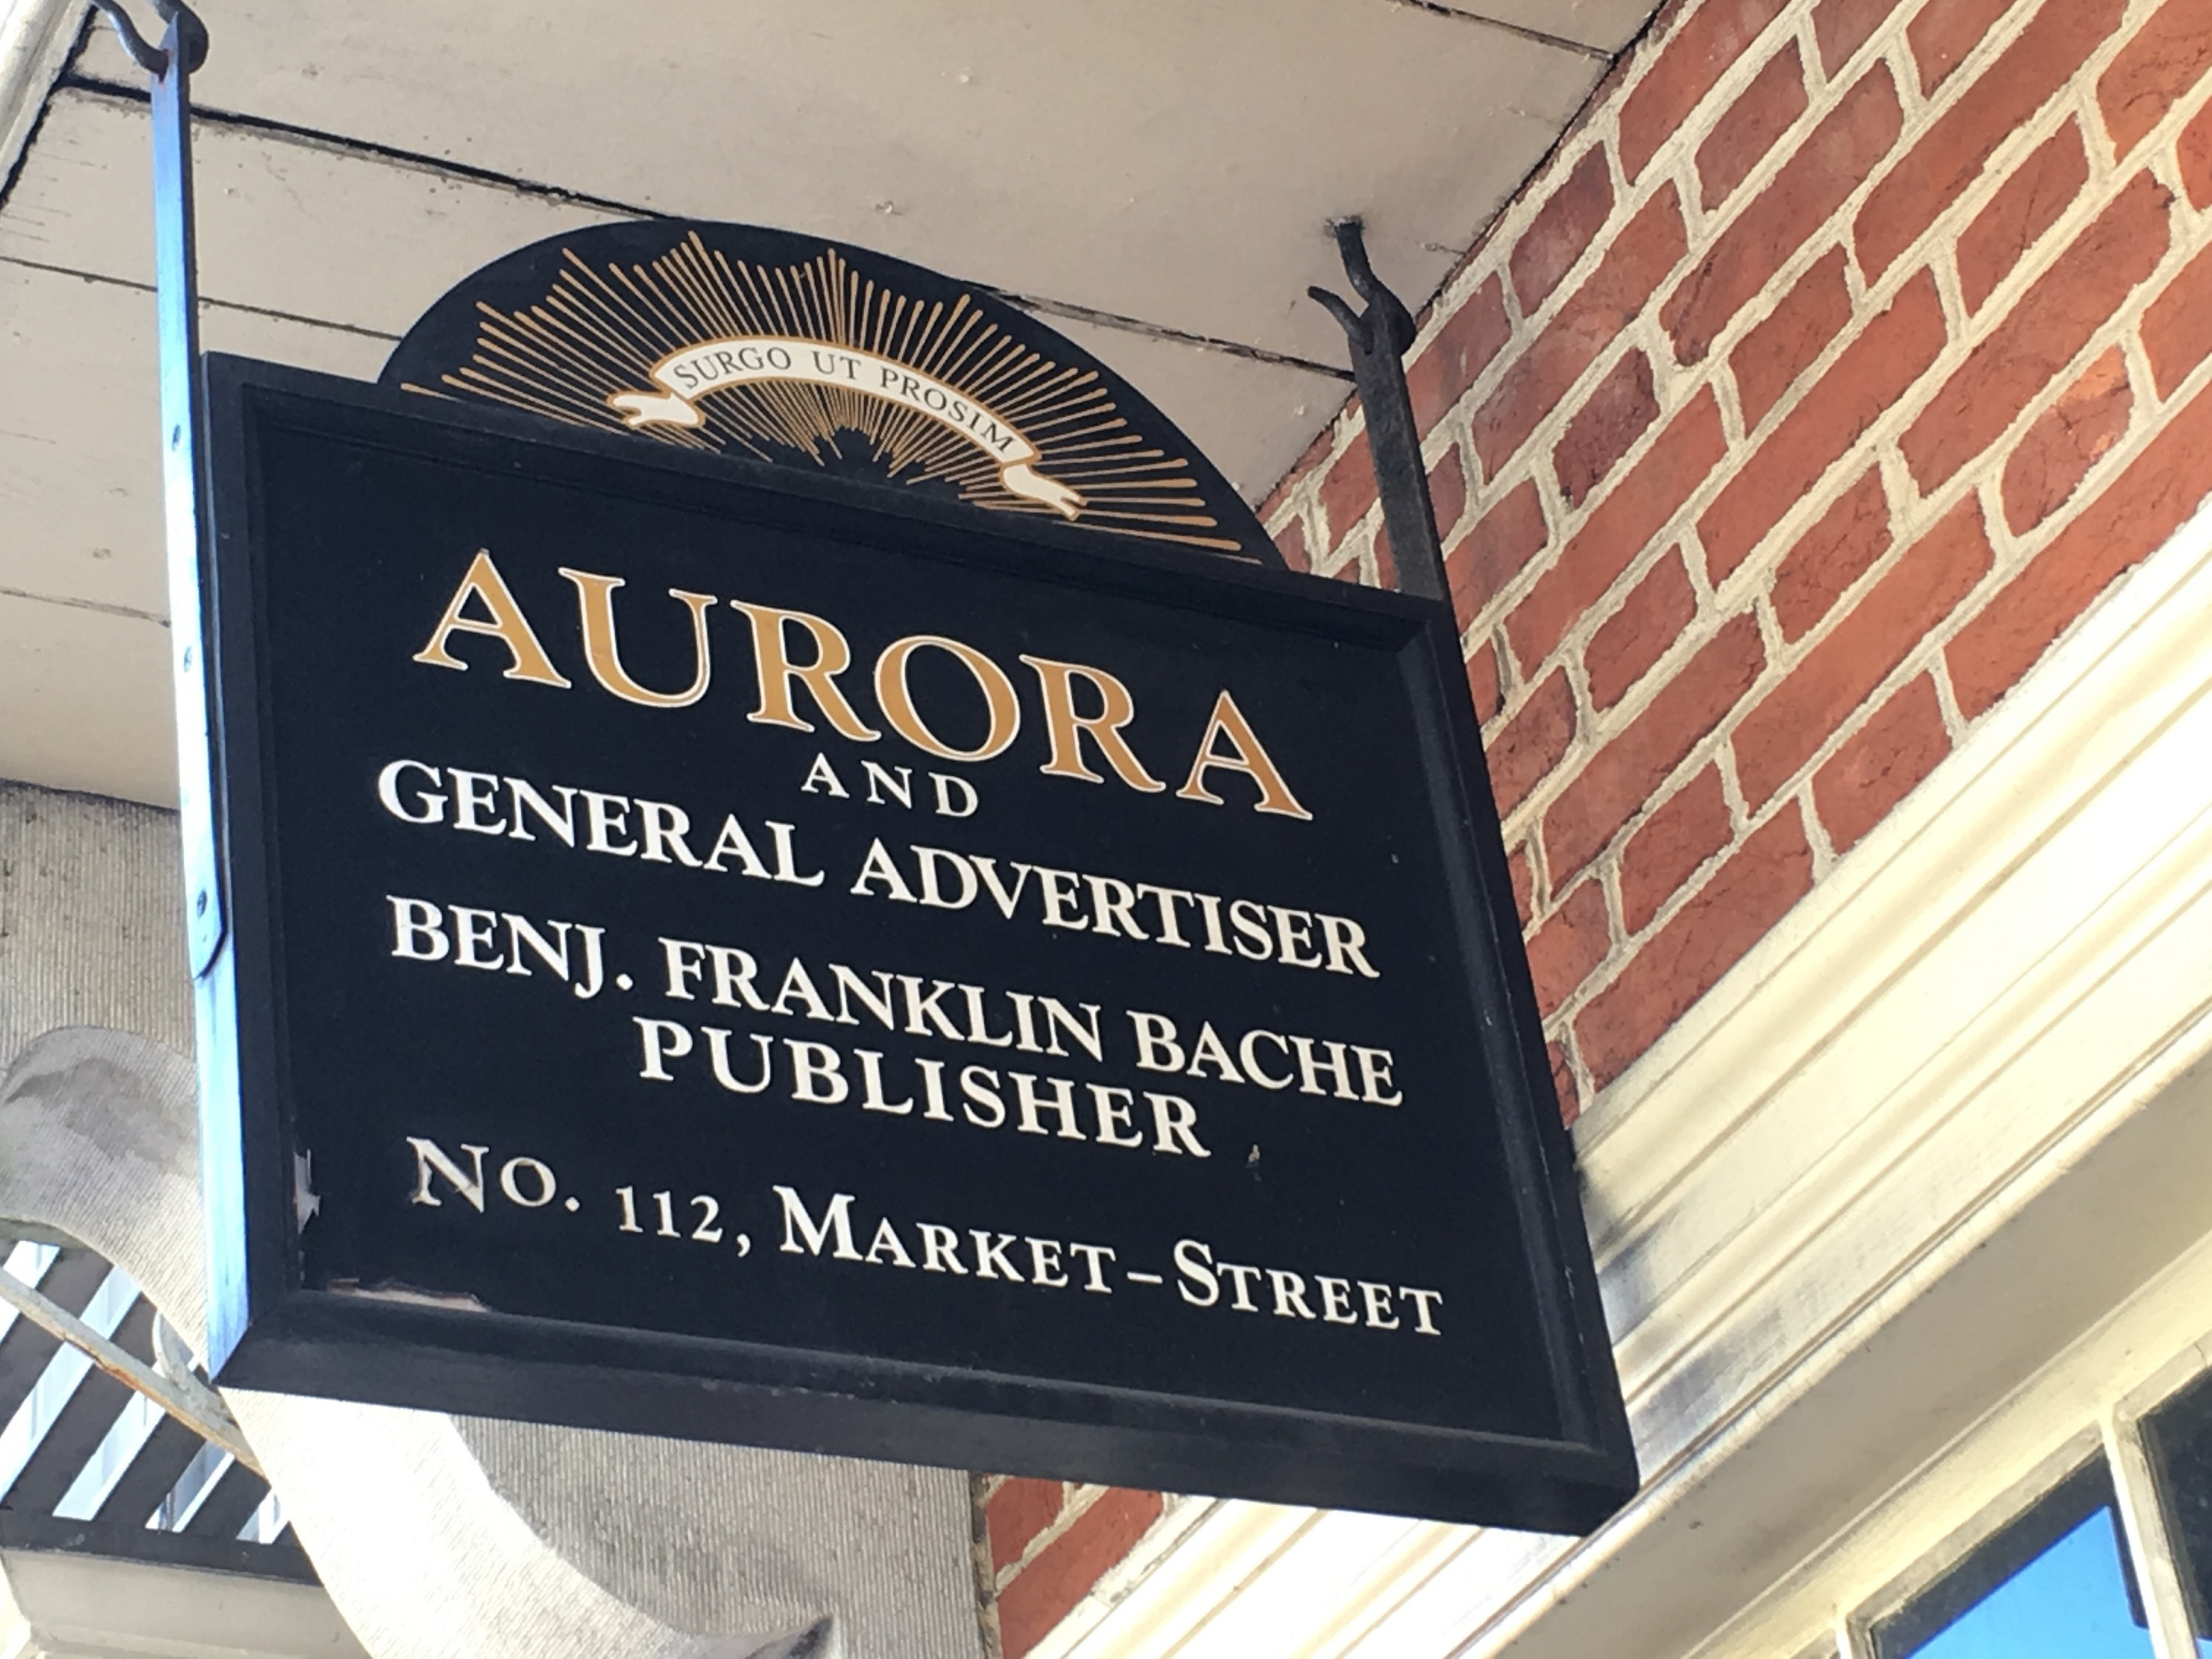 Sign for the Aurora in the historic area of Philadelphia.